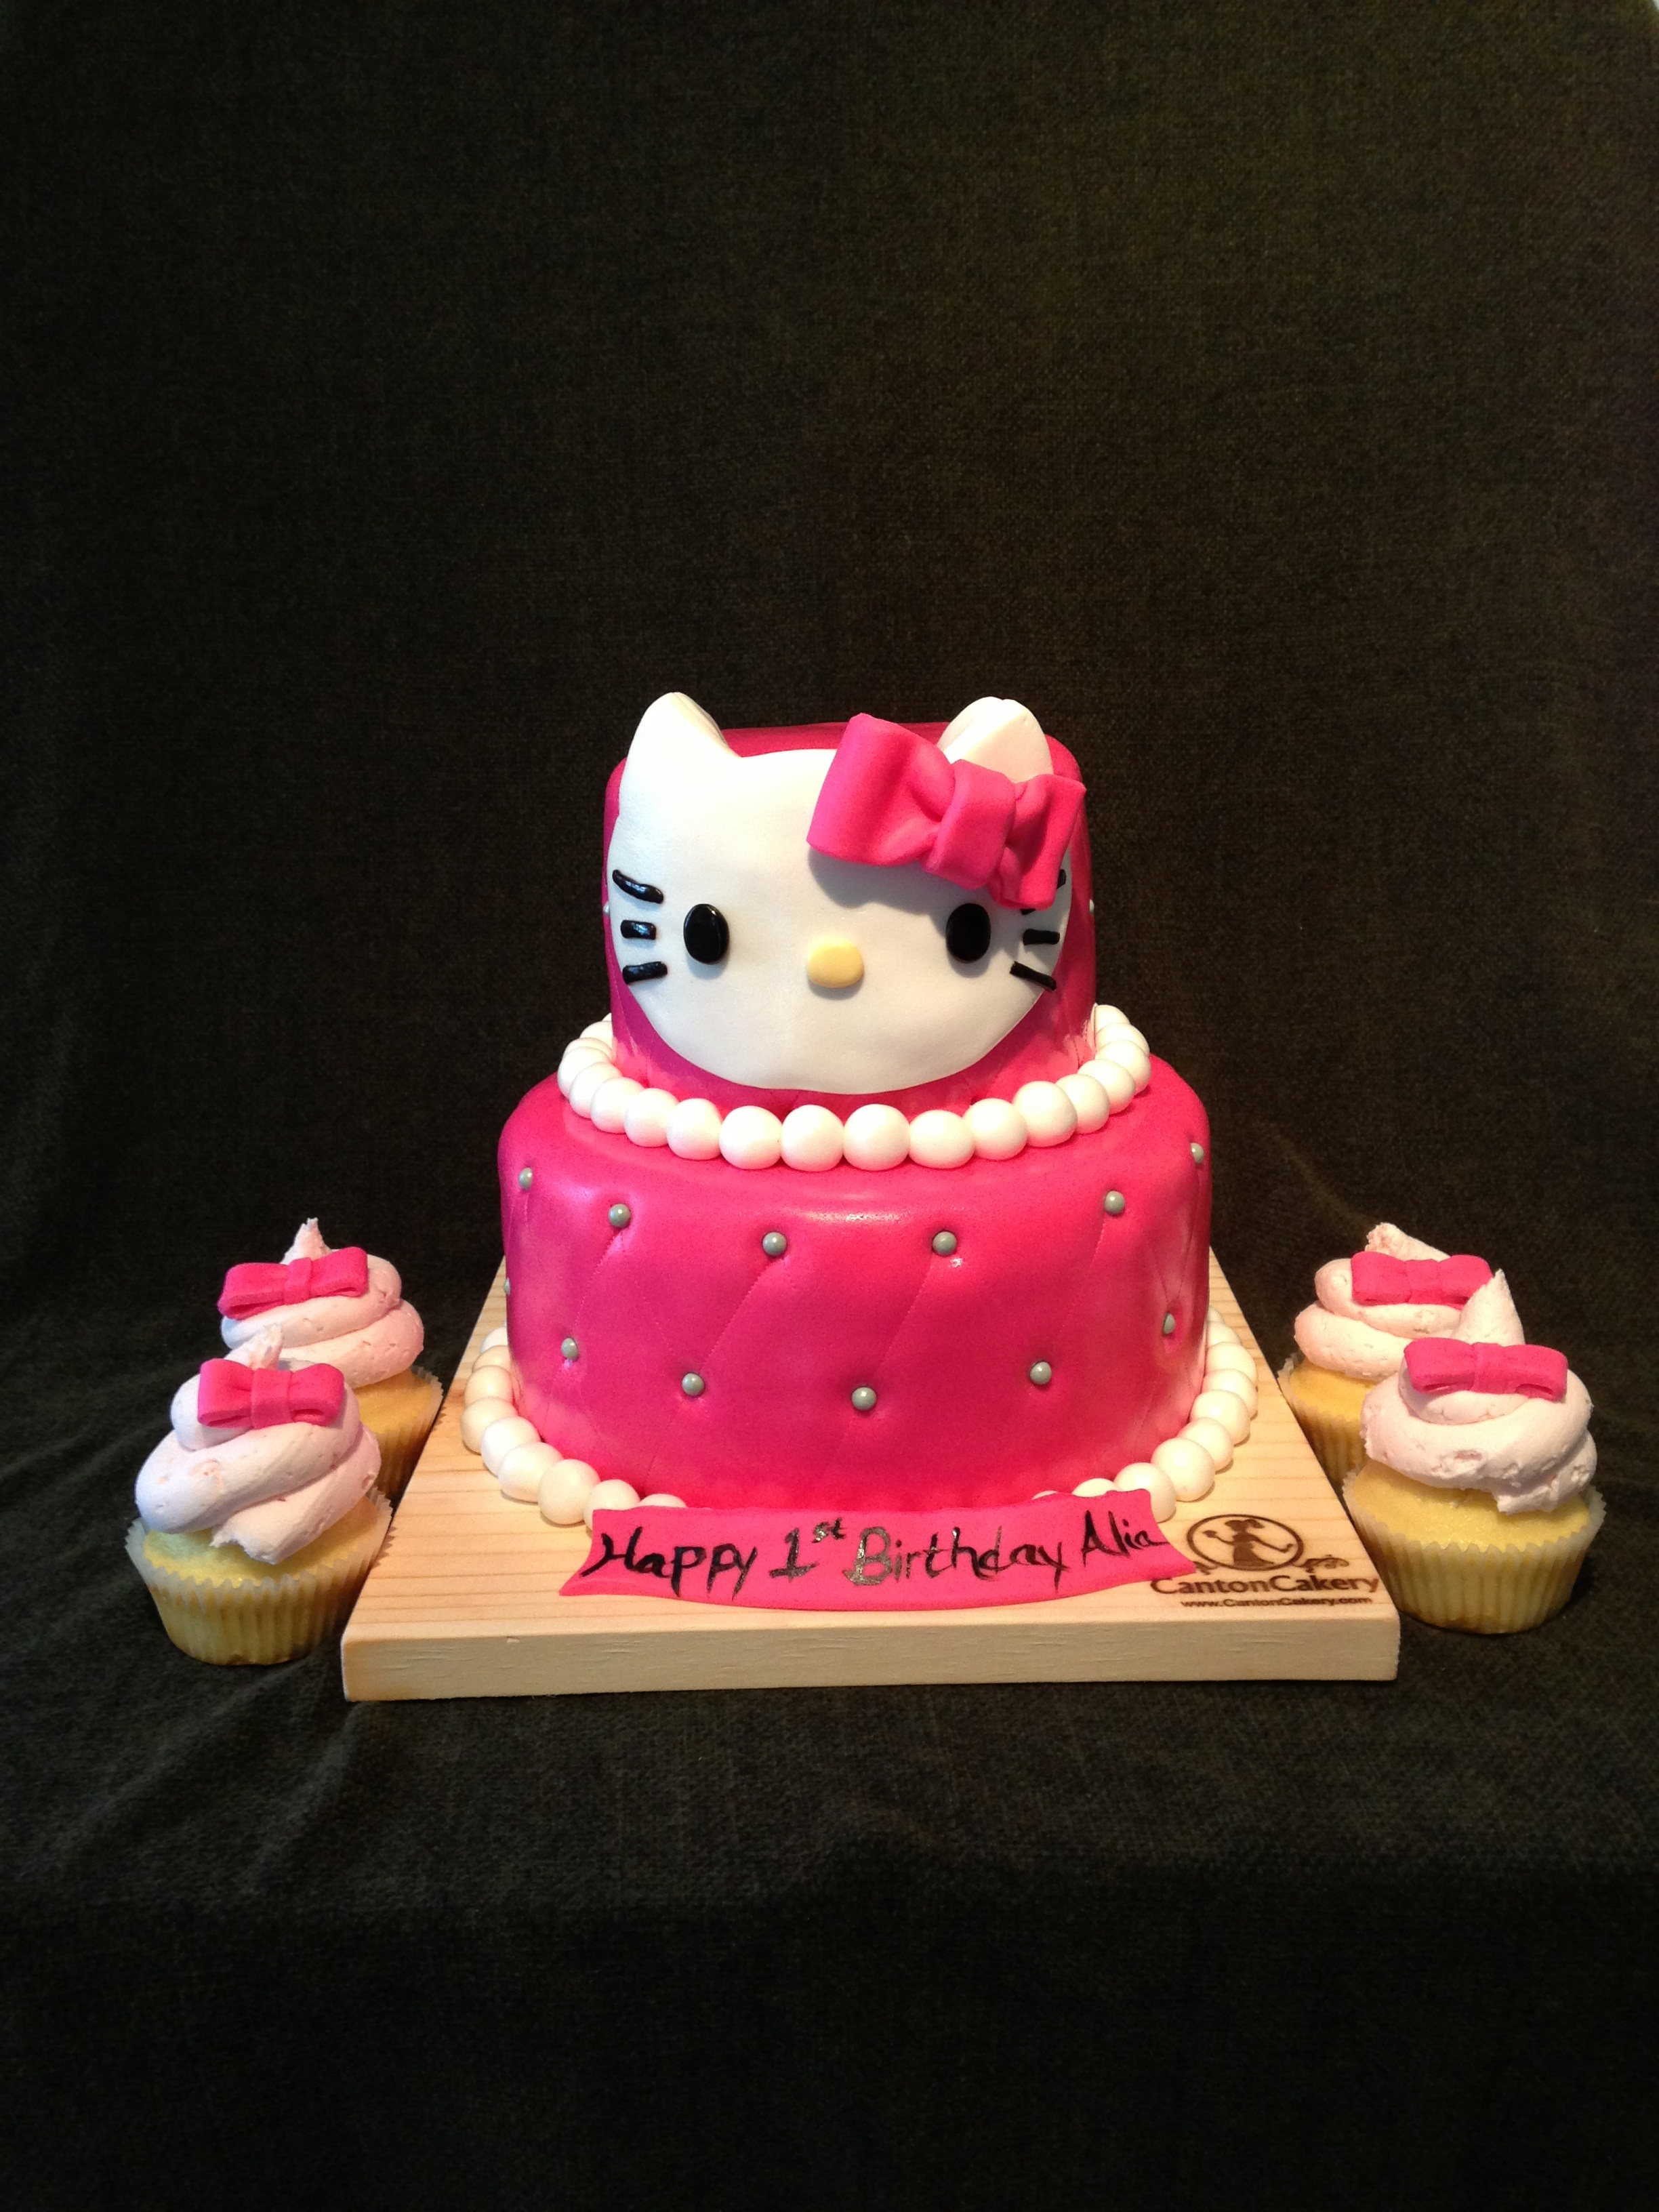 Hello Kitty Cake Design In Red Ribbon Dmost for